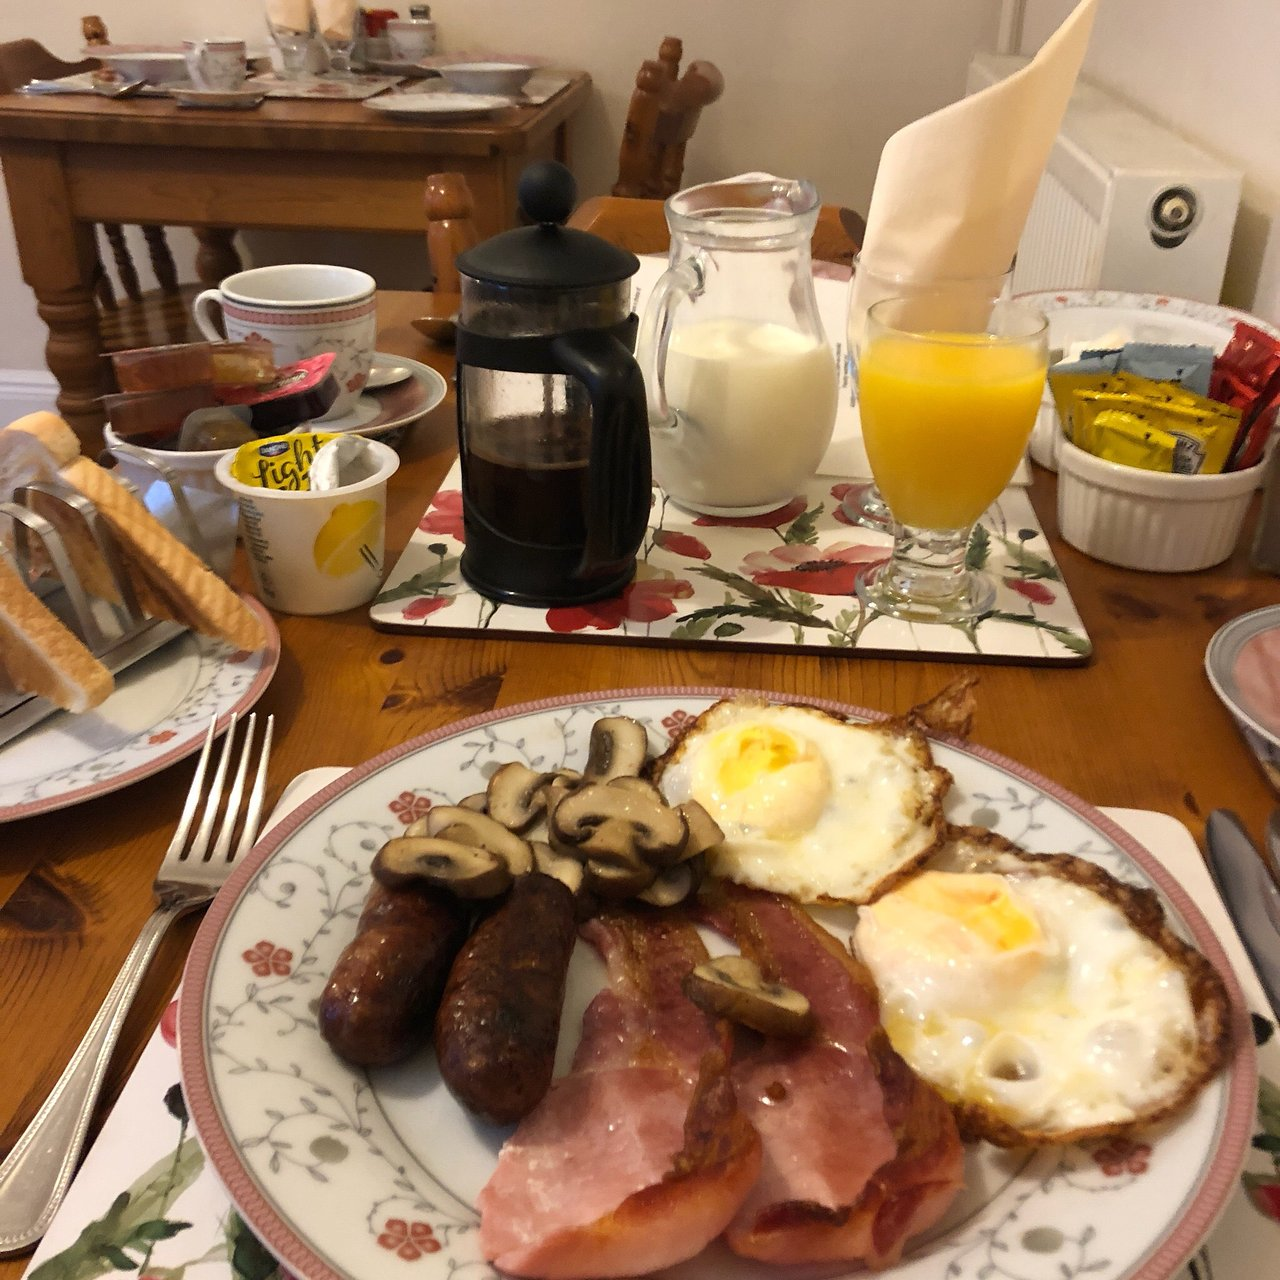 Bed And Breakfast Near Oxford The 10 Best Cambridge Bed And Breakfasts Of 2019 With Prices